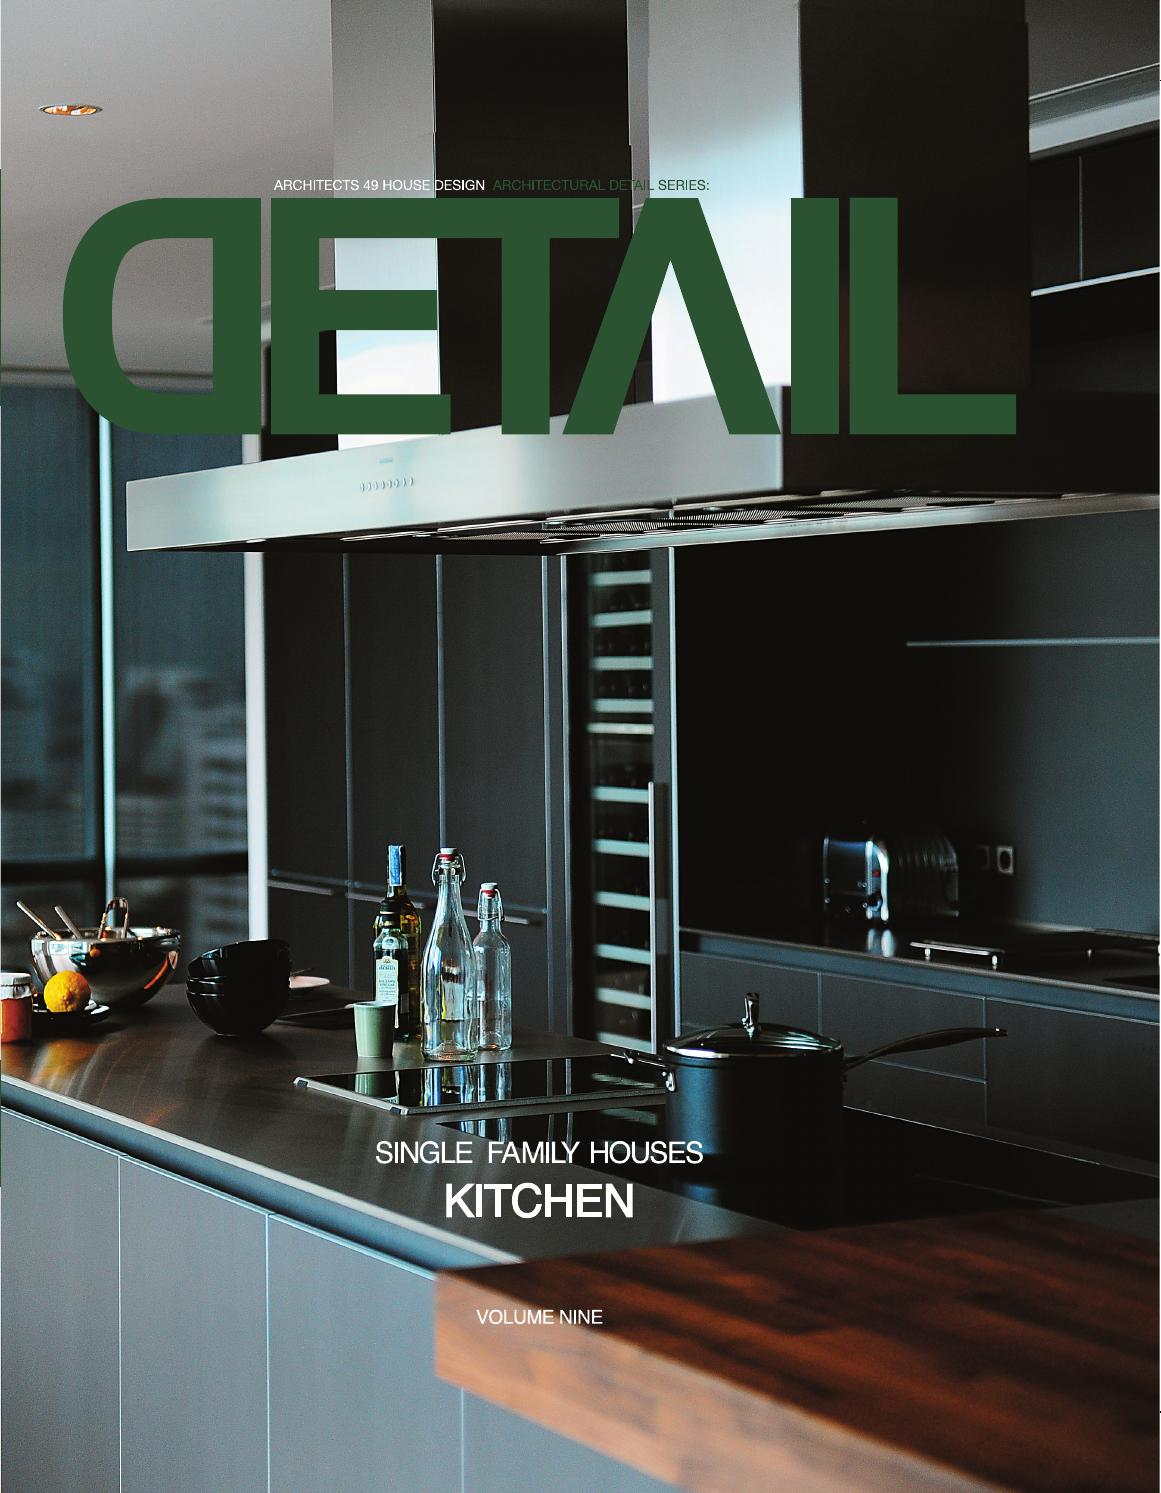 Interni Annual Cucina 2010 by Interni Magazine - issuu